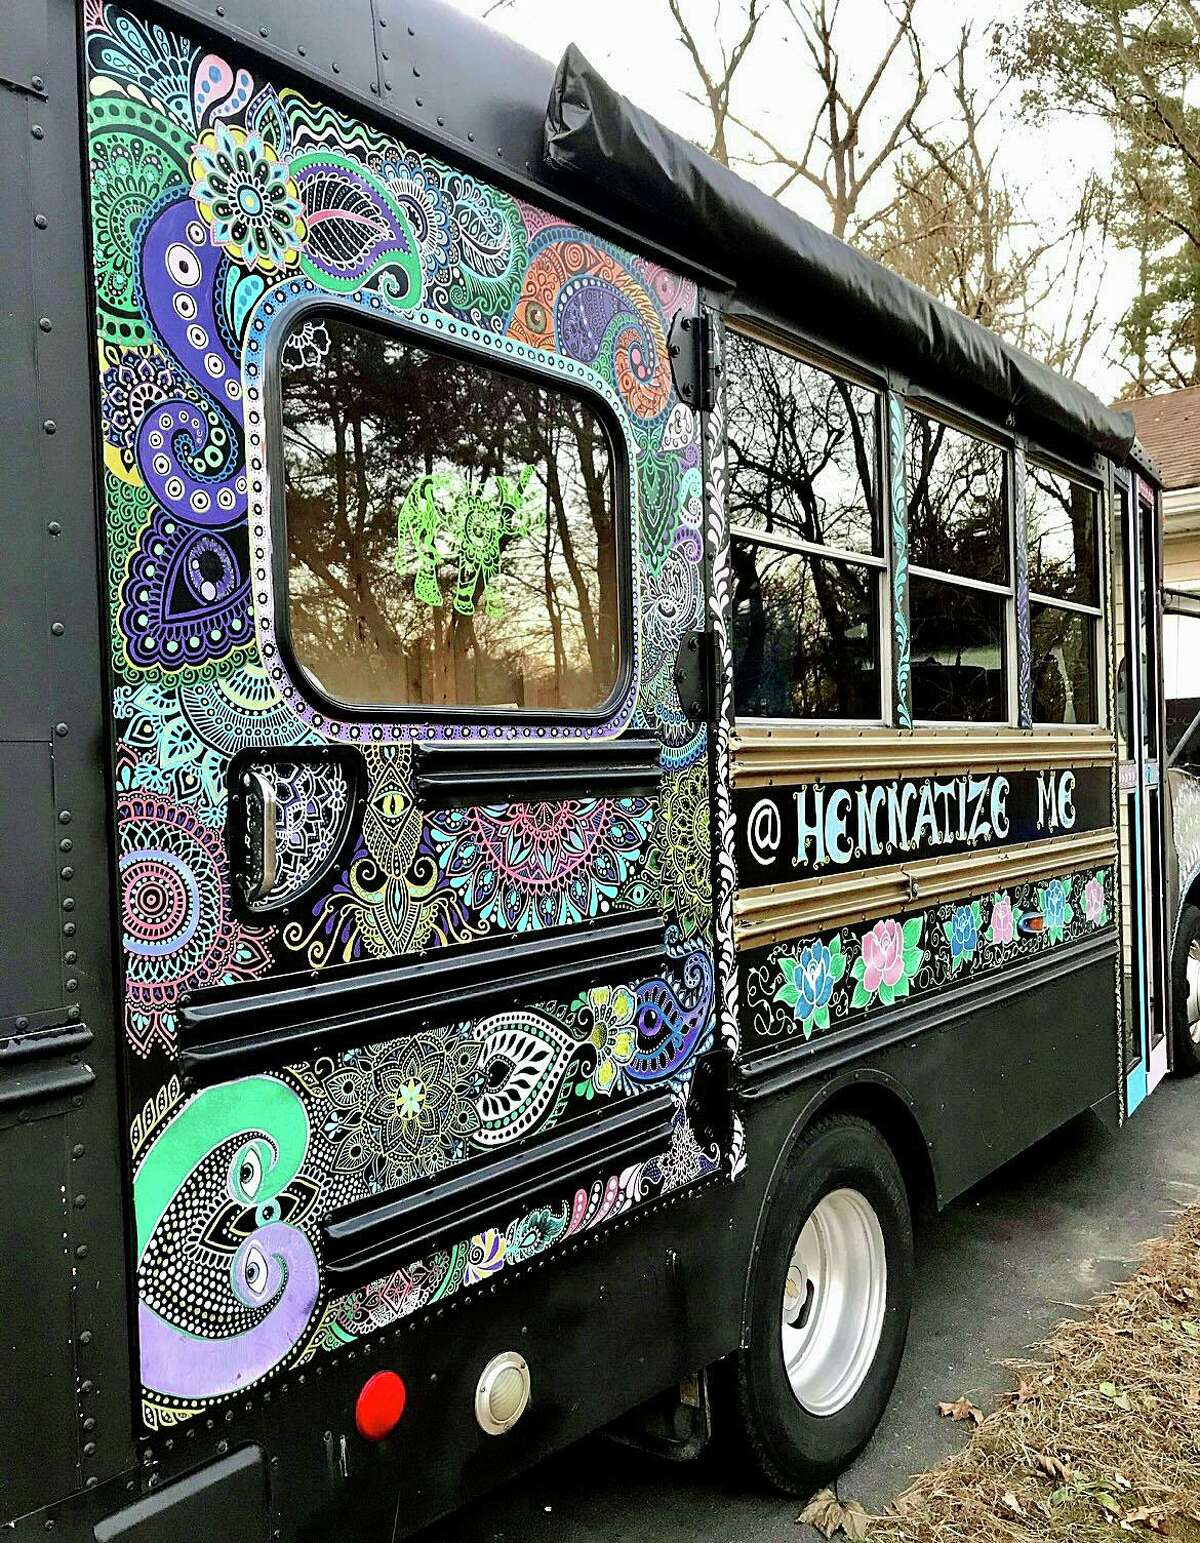 The Hennative henna bus will be at the Age of Aquarius Festival at Avant Garde in Branford.